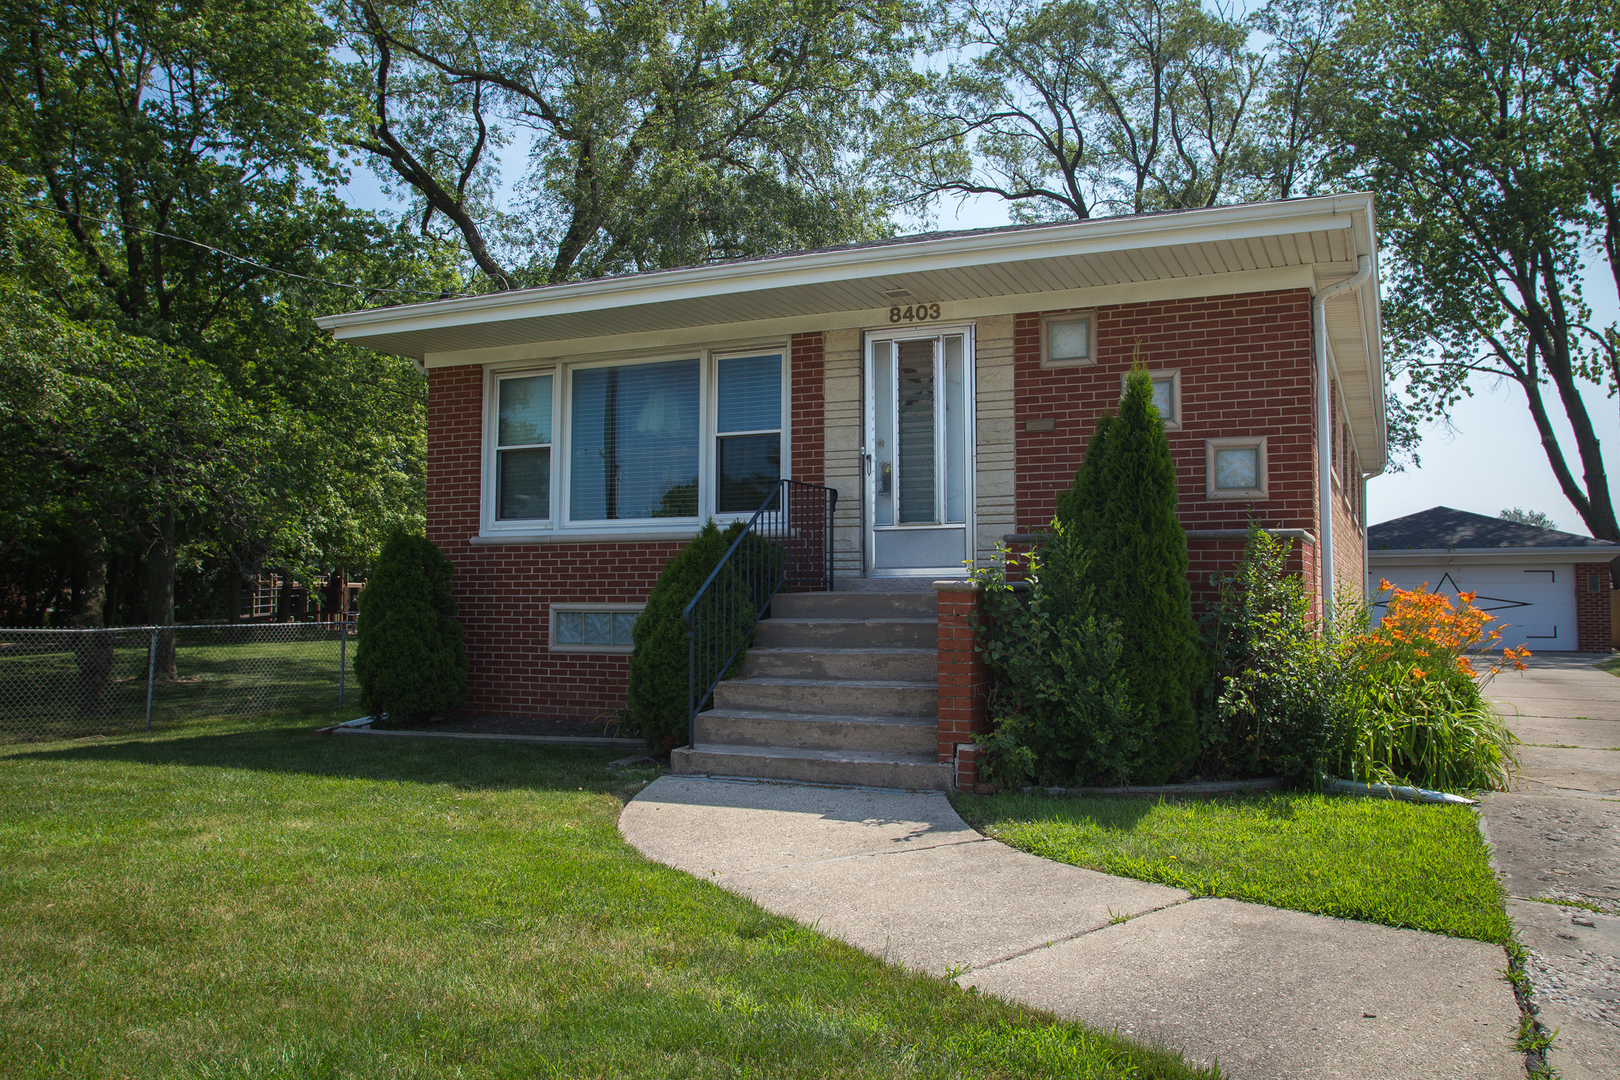 8403 North Greenwood Avenue, Niles in Cook County, IL 60714 Home for Sale